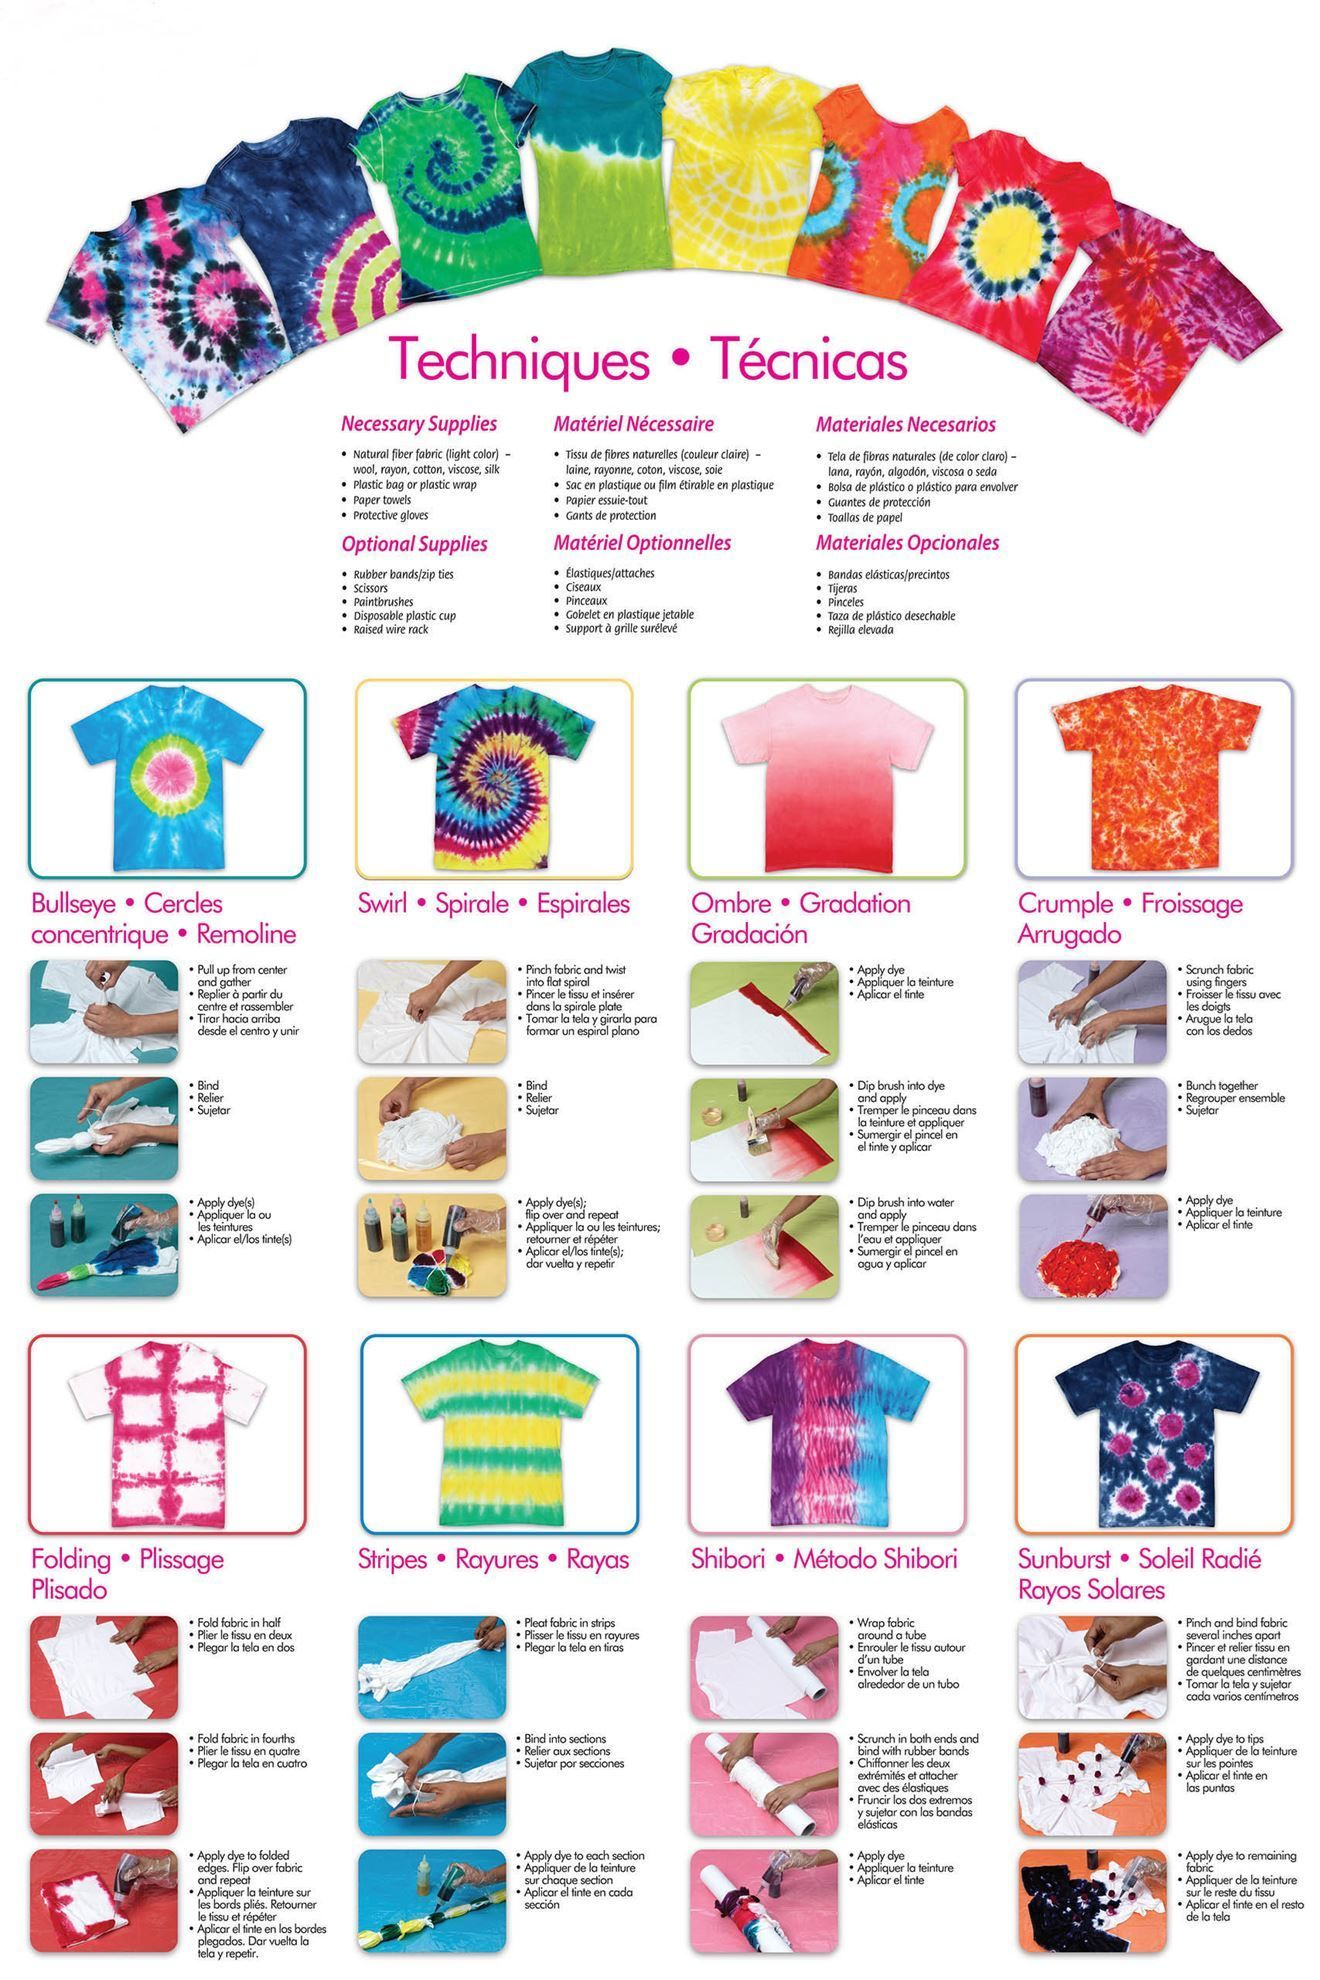 Tiedyeyoursummer content images thumbs 0000327tie dye tips and techniques awesome chart to help get started with tie dye fun and funky colors nvjuhfo Gallery